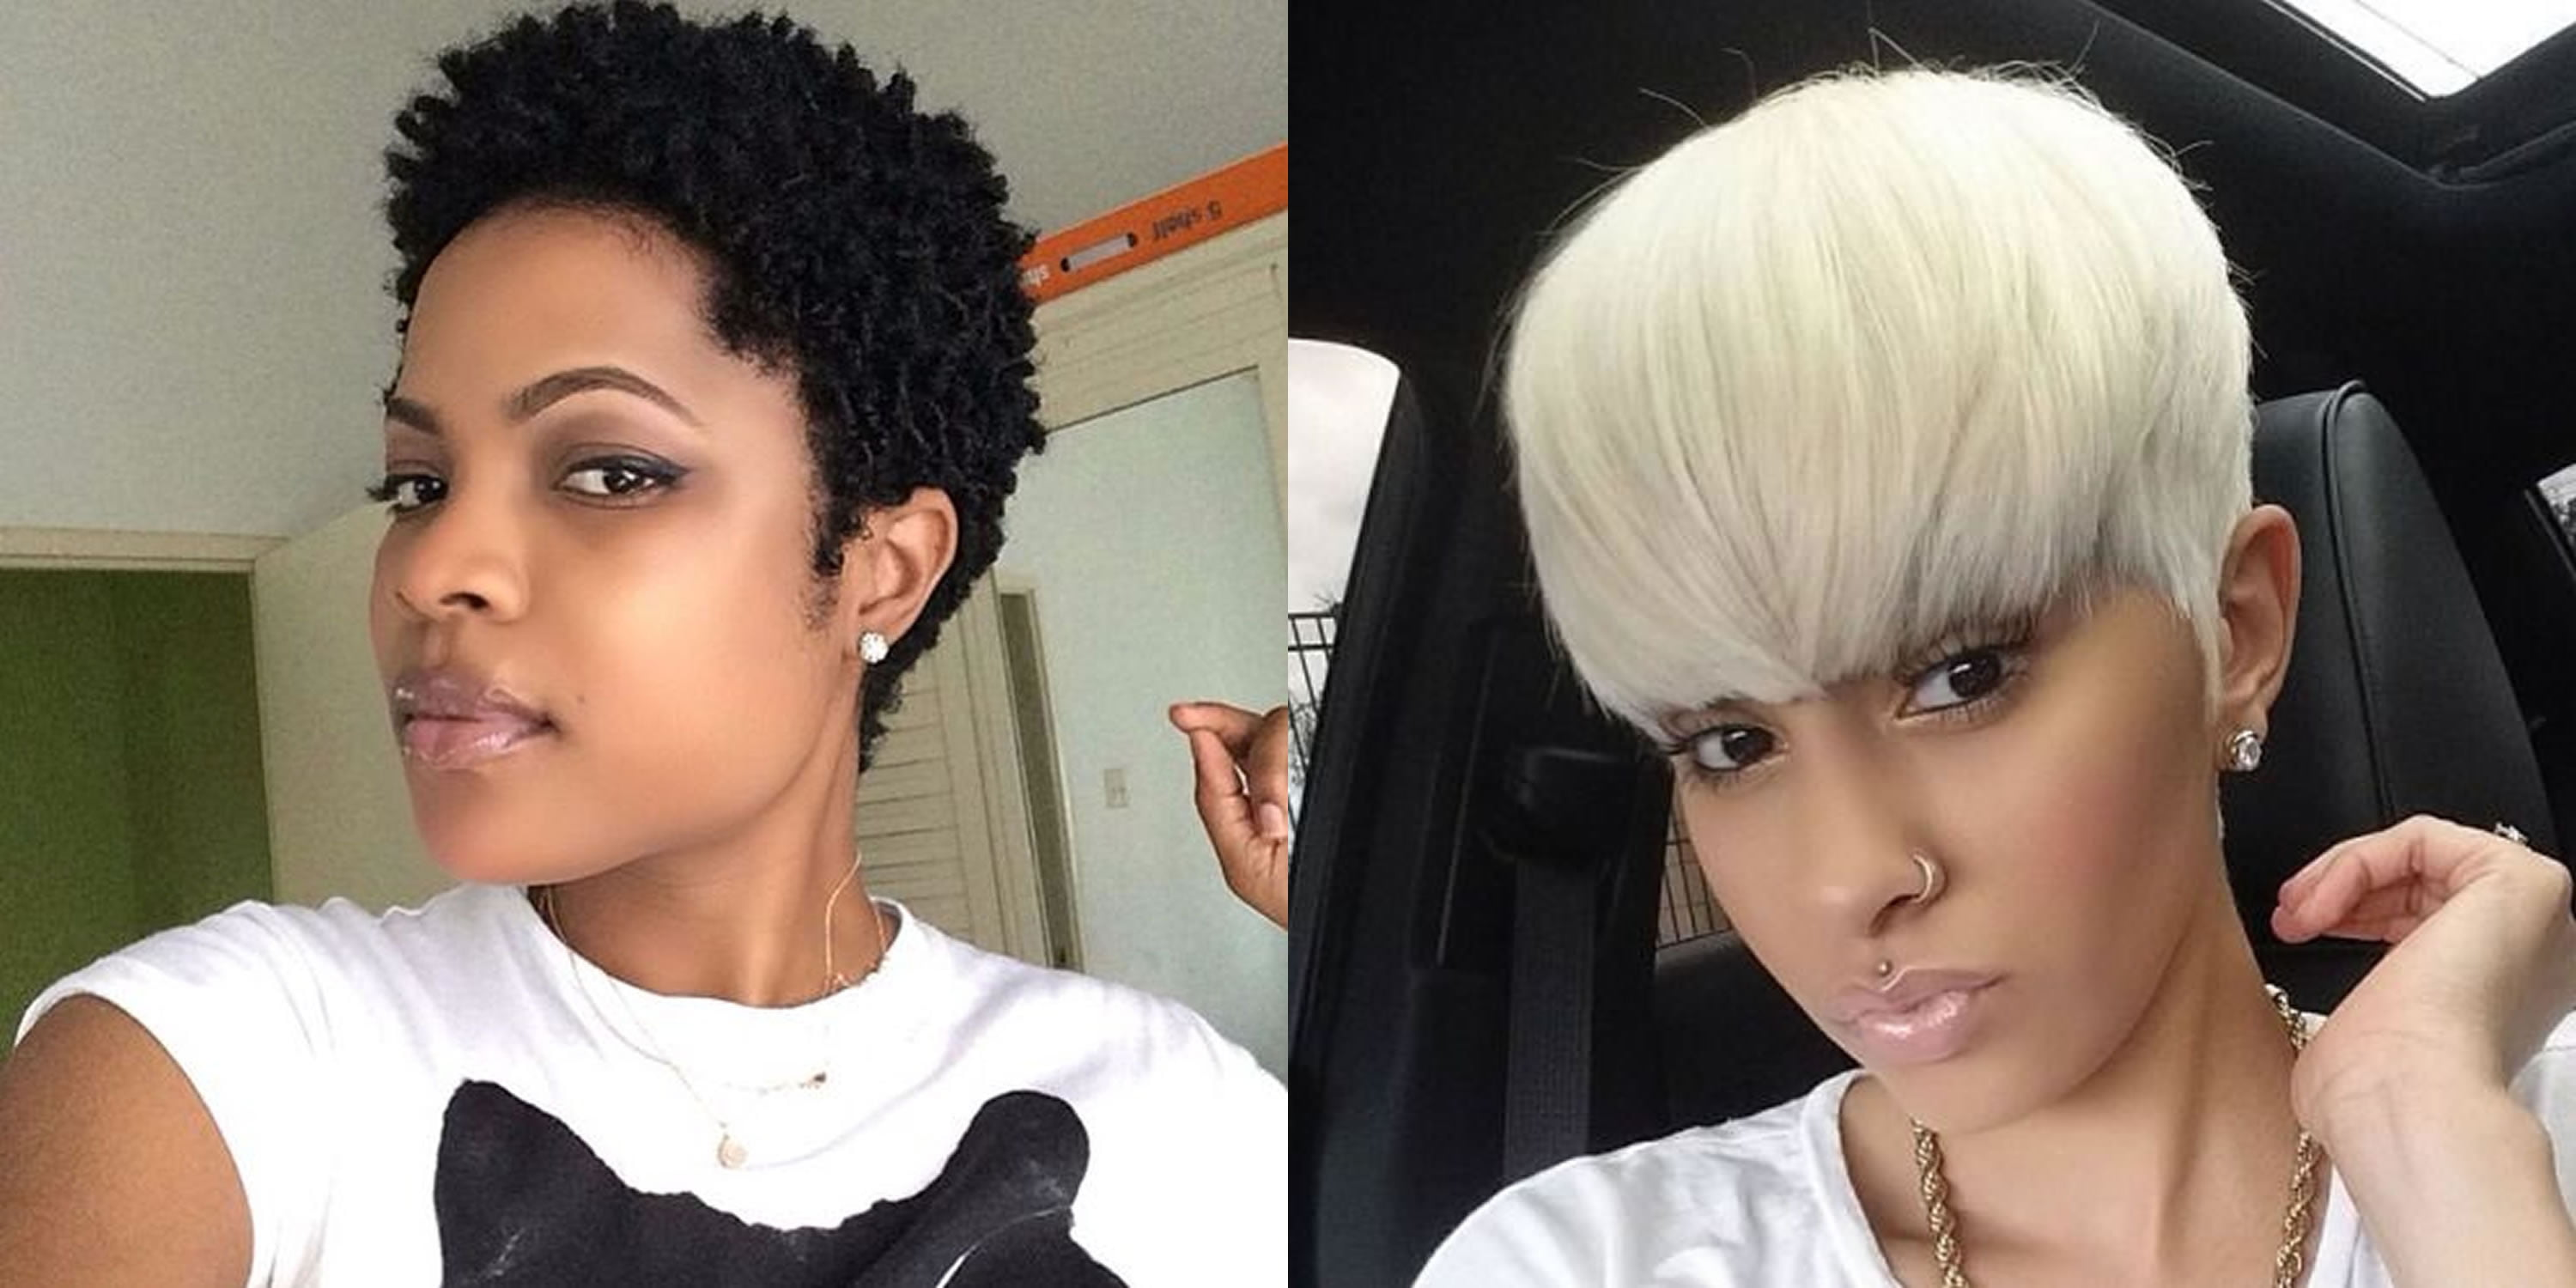 Pixie Short Haircuts and Hair Colors for Black Women - Best Short Hair Images for 2018-2019 (1)